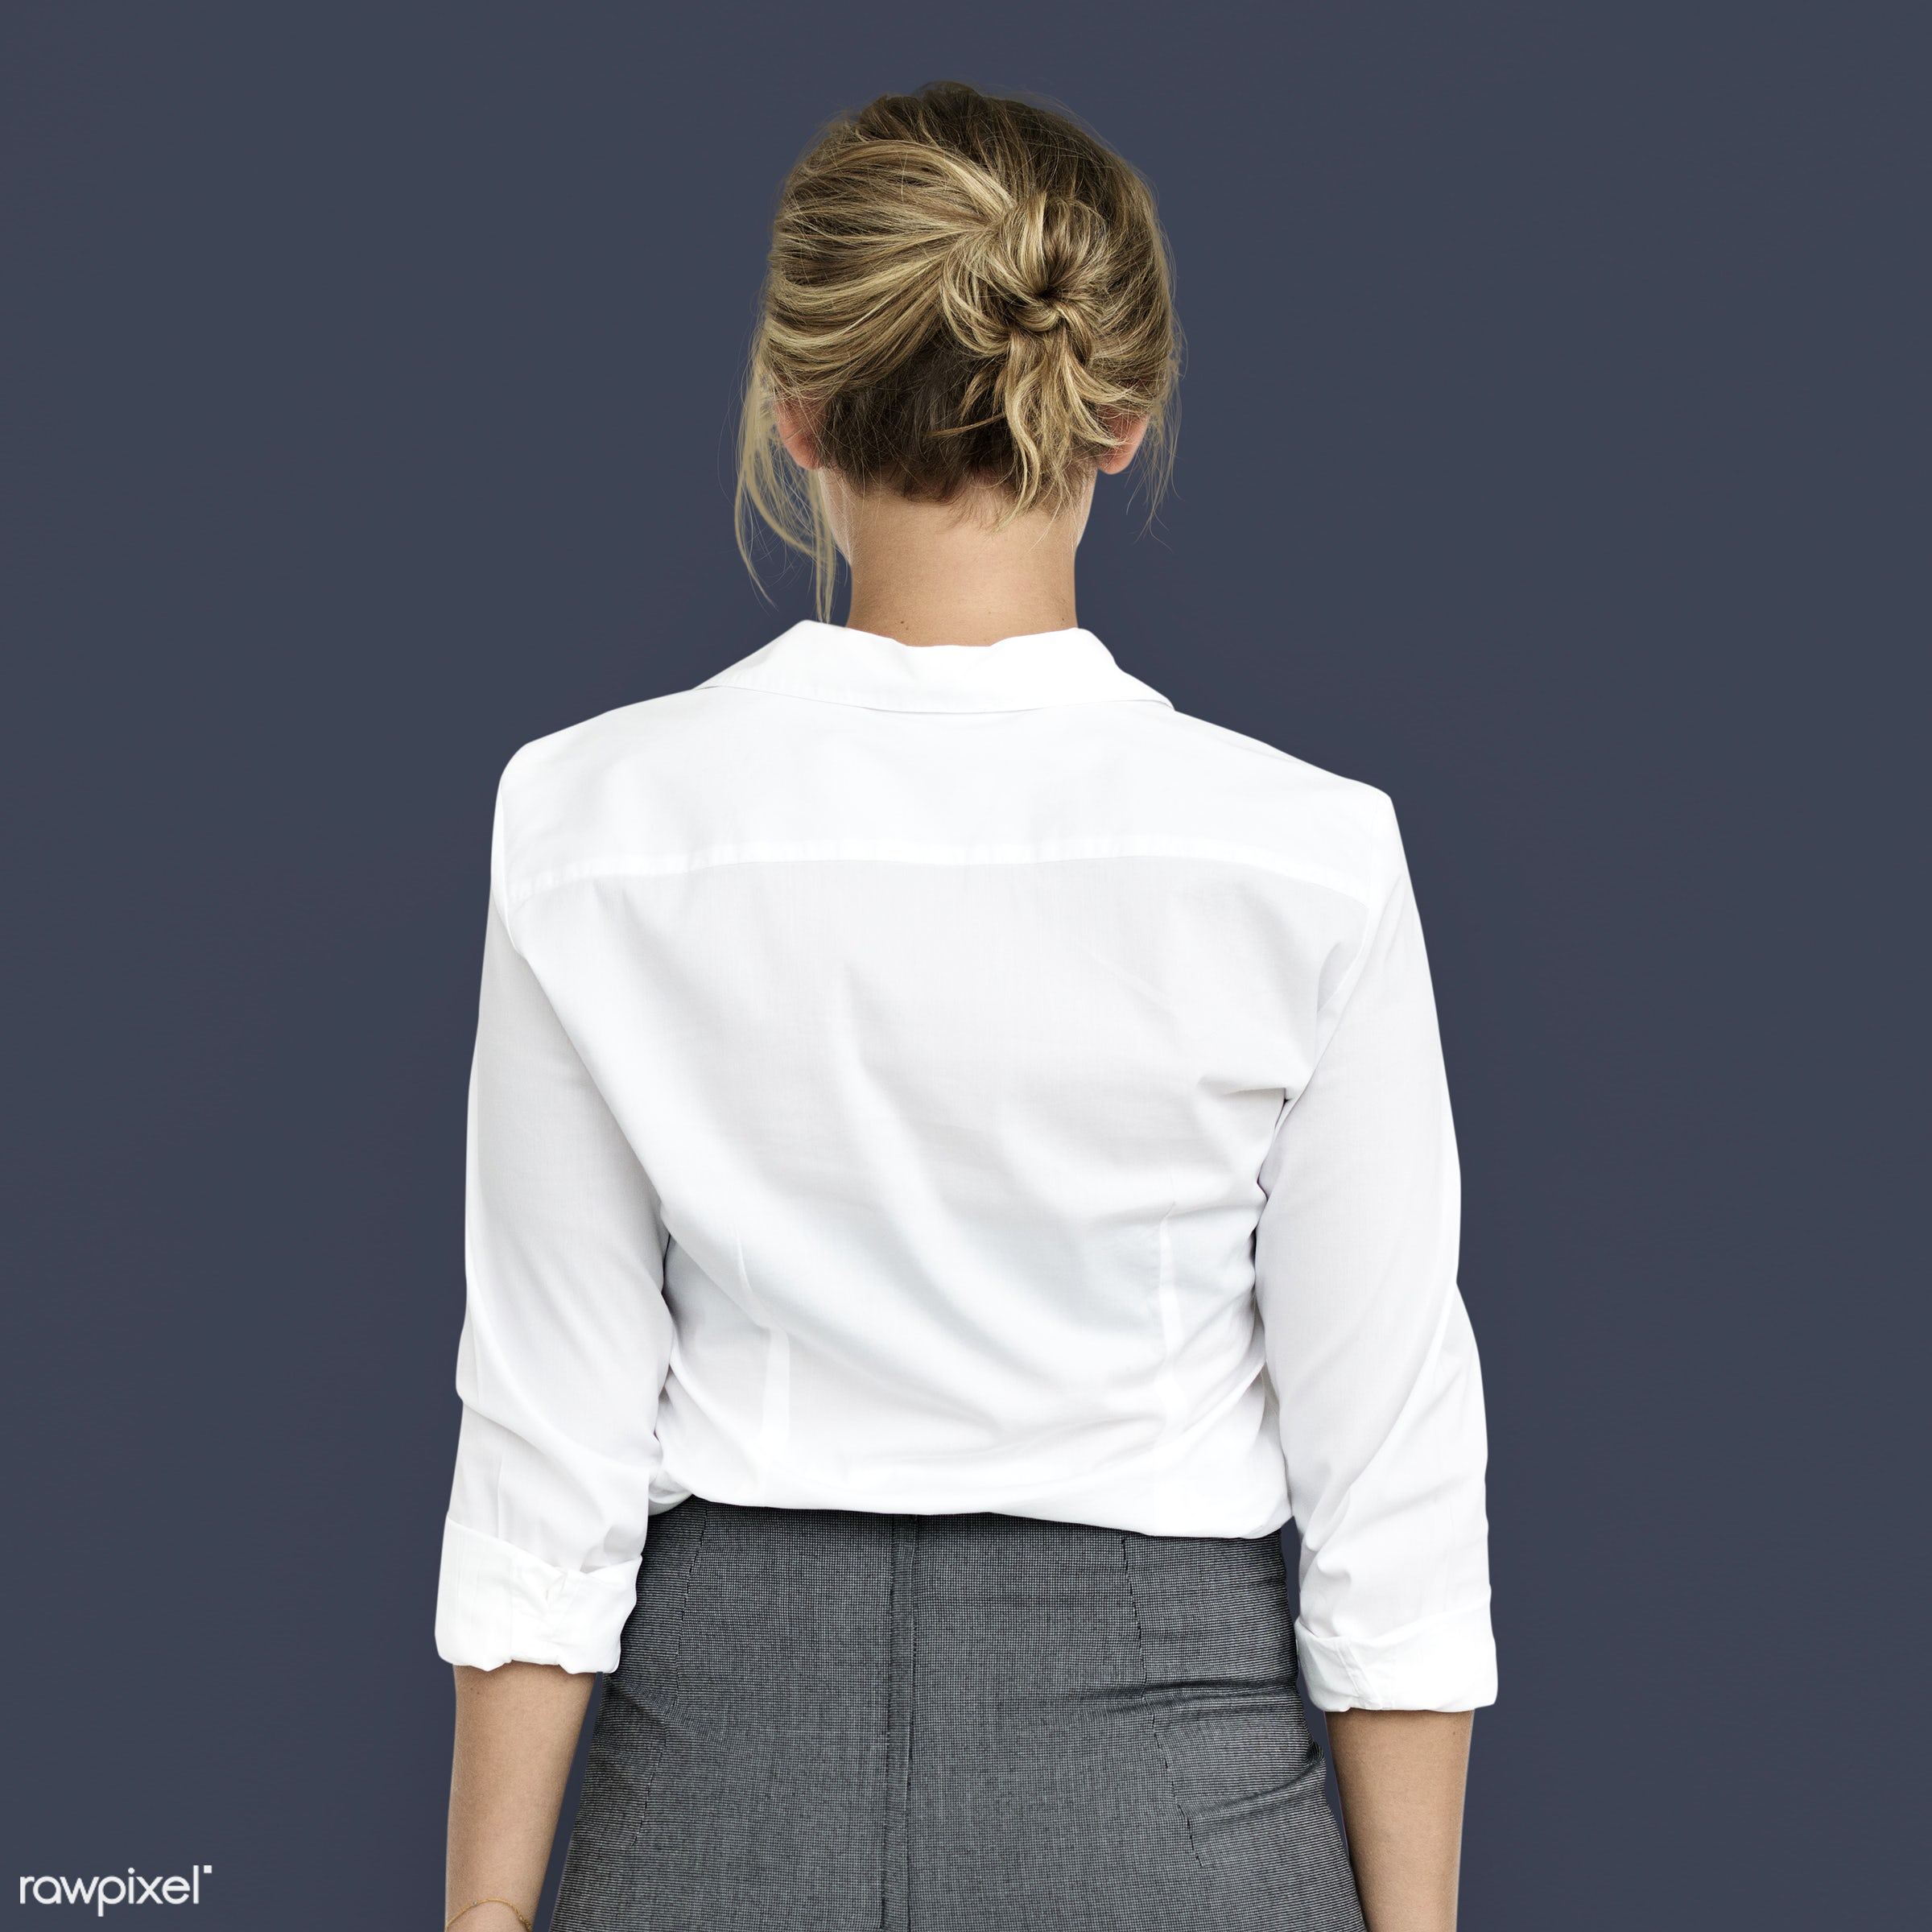 expression, studio, person, people, business, caucasian, girl, woman, back shot, back view, isolated, business dress, white...